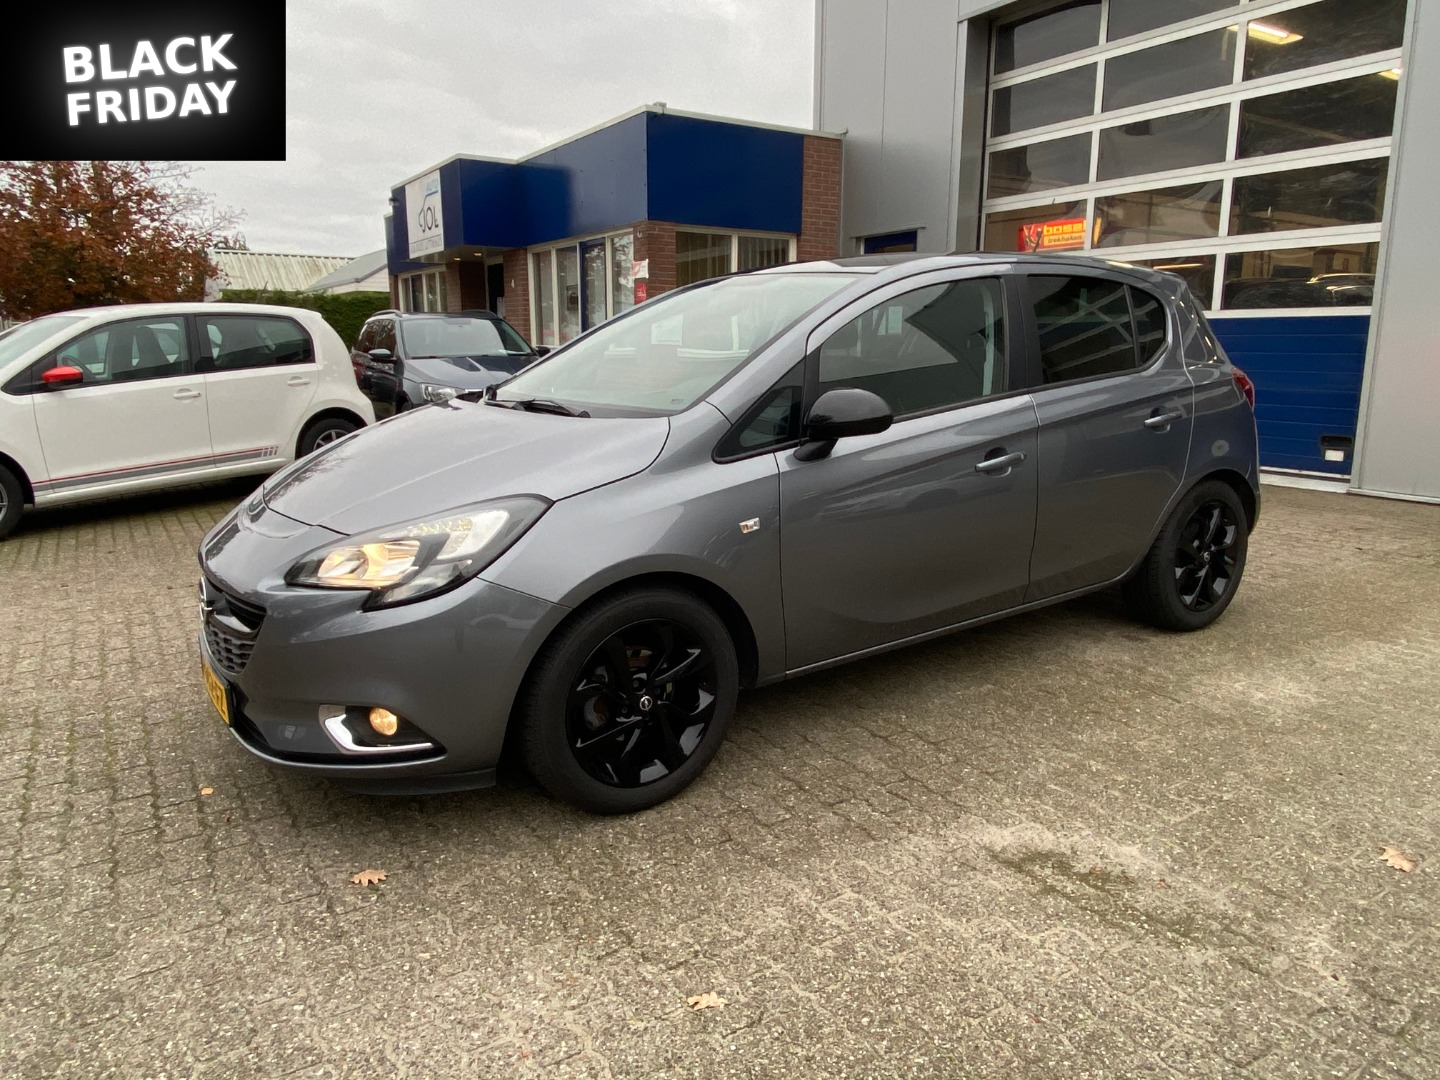 Opel Corsa 1.4 Innovation - black edition - LED - cruise control